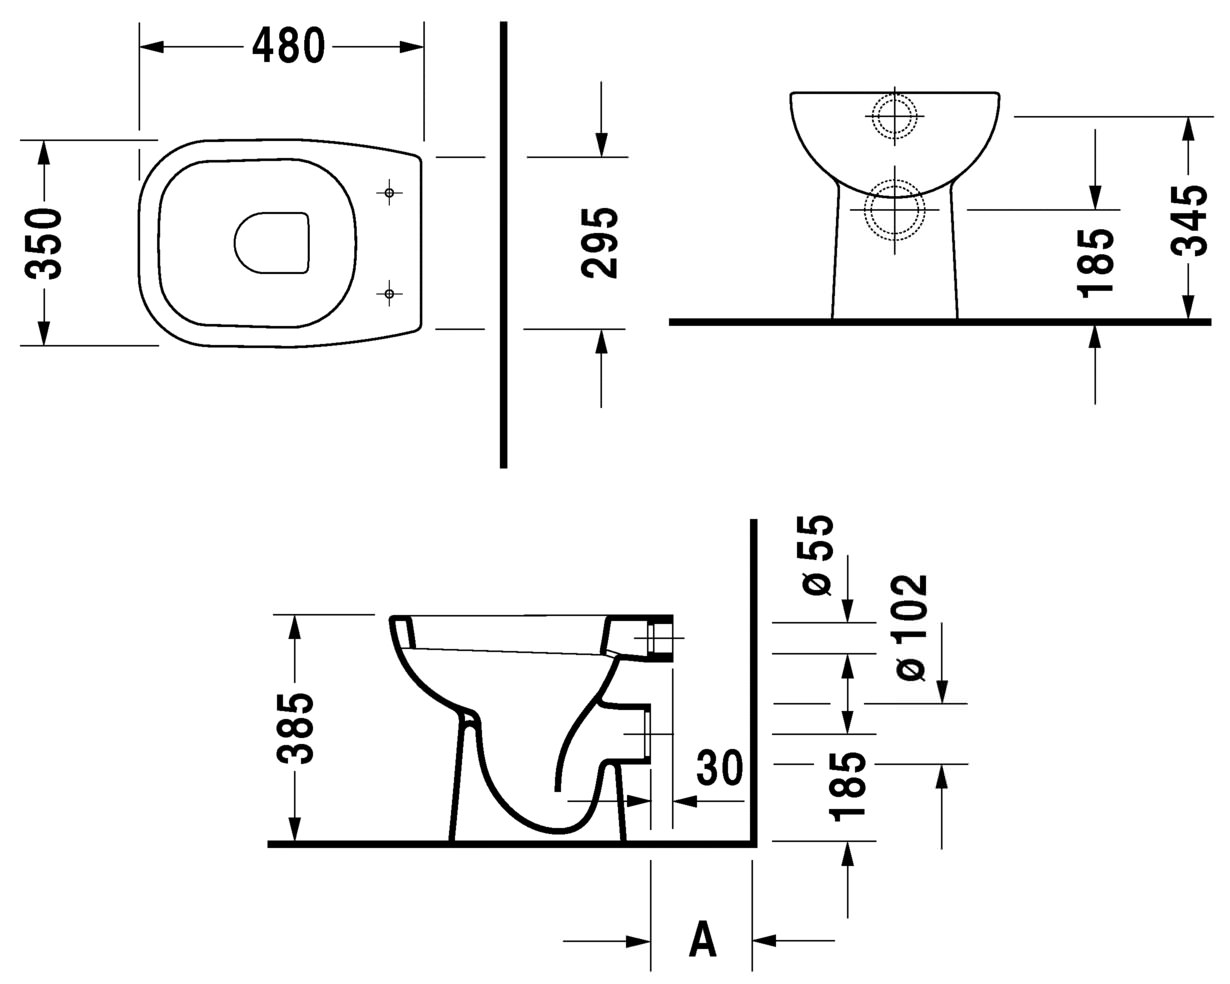 duravit d code 480mm floor standing toilet. Black Bedroom Furniture Sets. Home Design Ideas